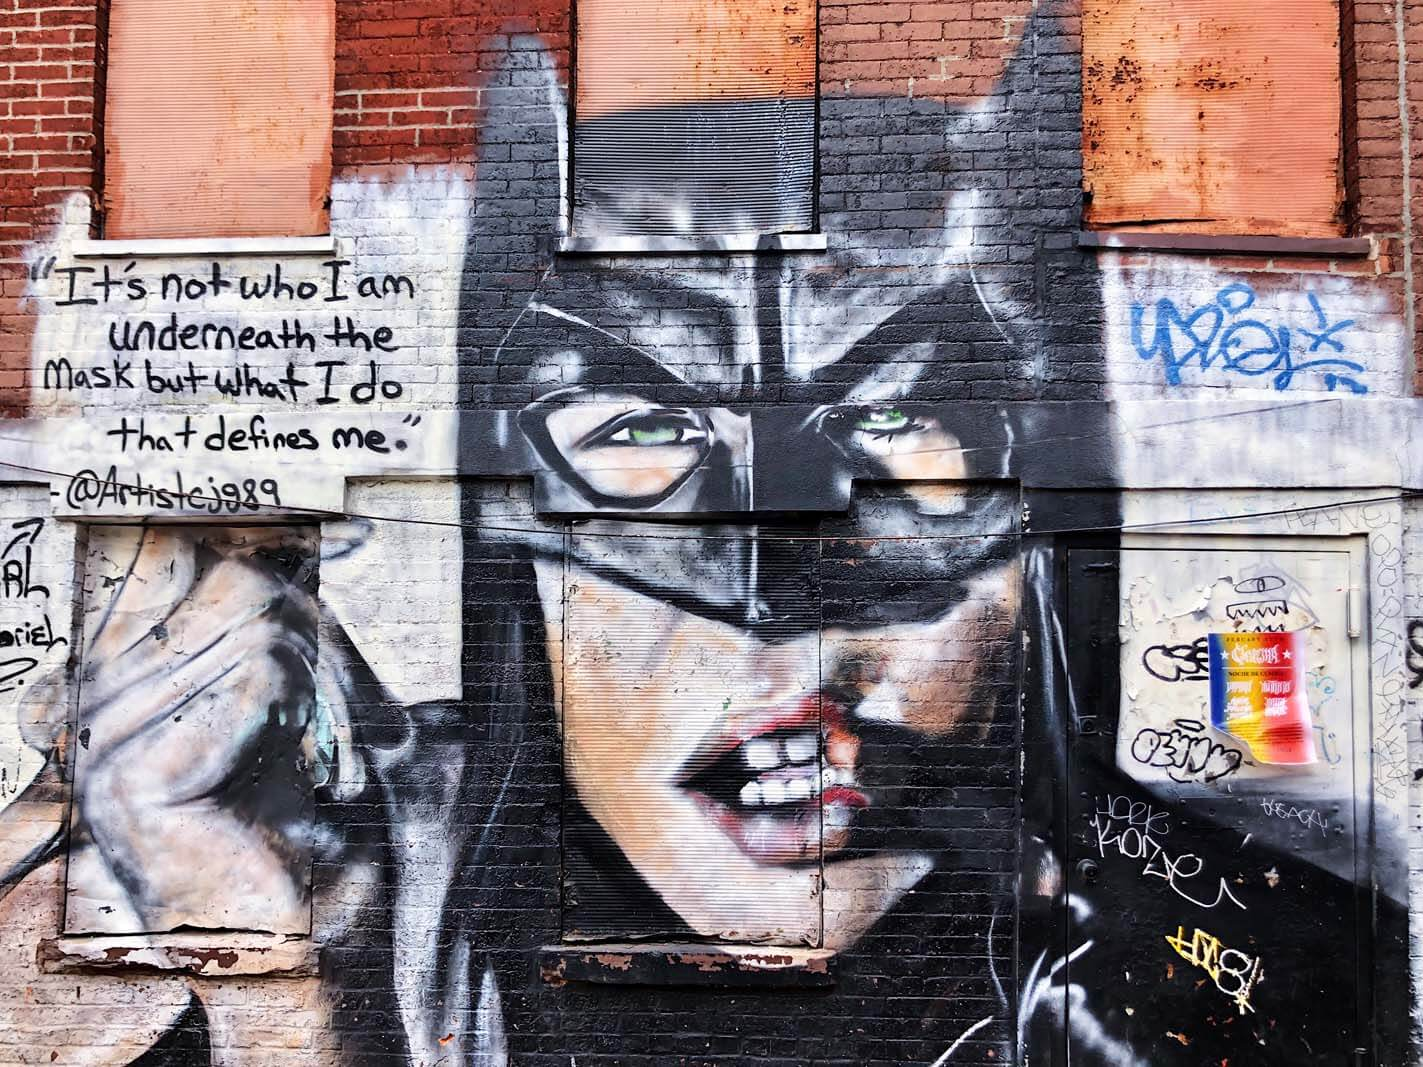 The Batgirl by Carl J Gabriel in Williamsburg Brooklyn